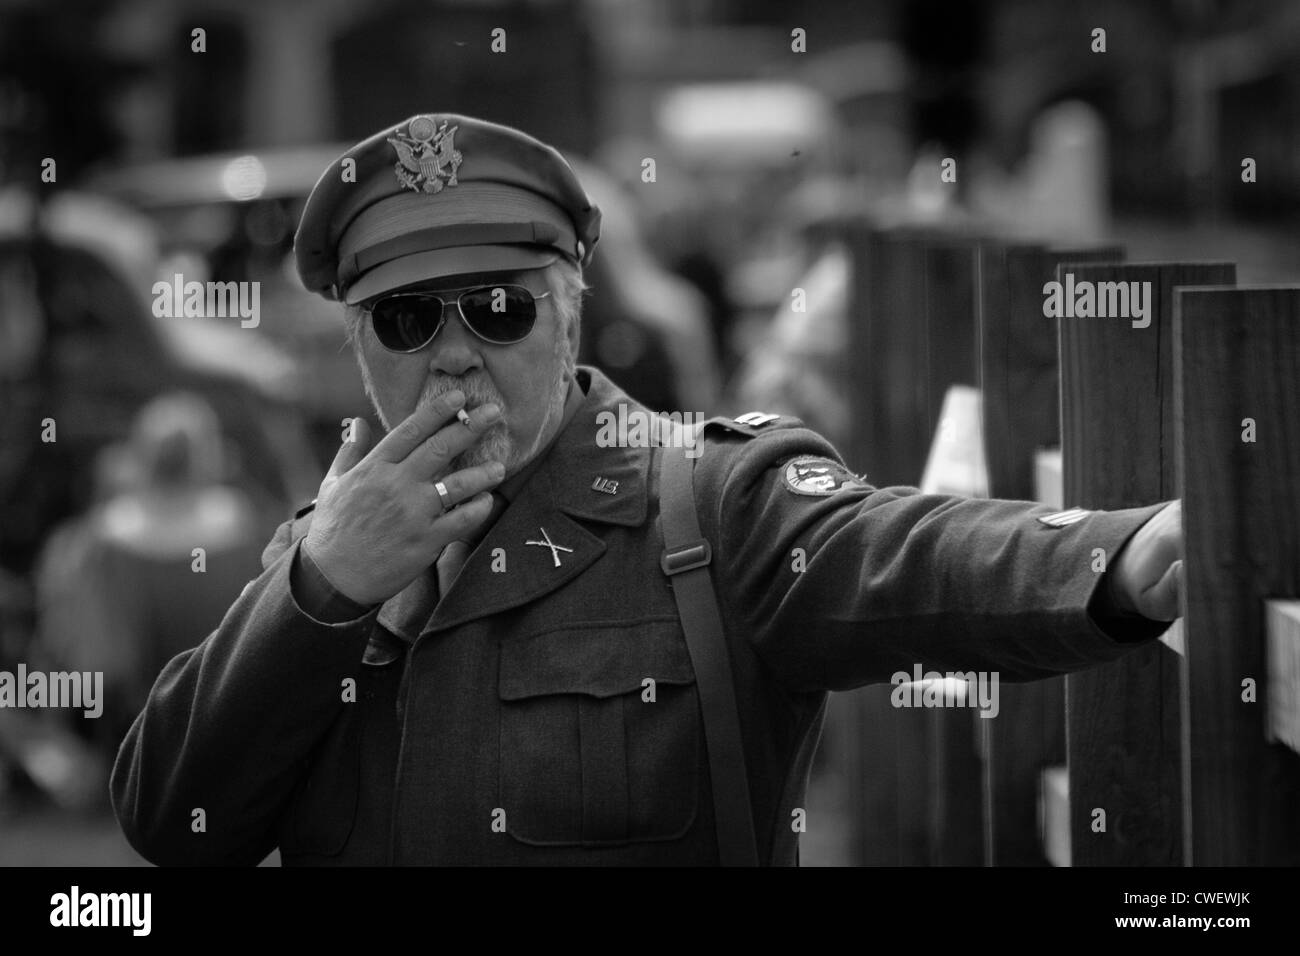 US Army Officer with Cigarette - Stock Image